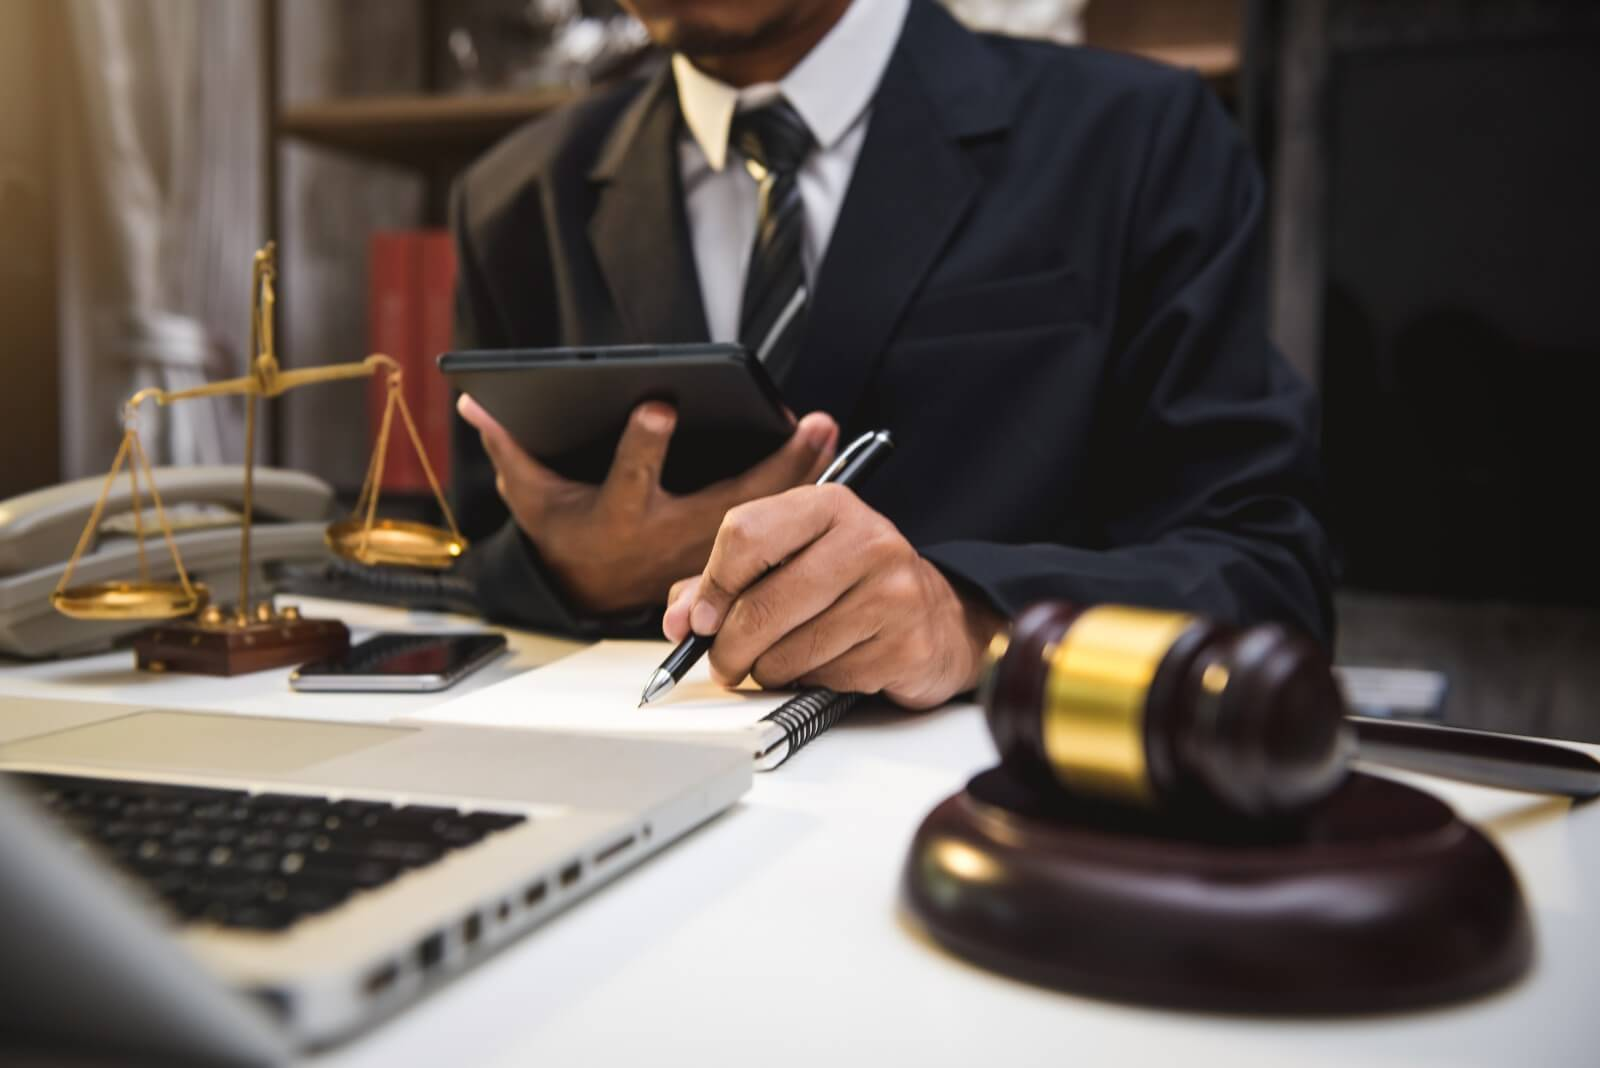 a lawyer records blog ideas on a notebook